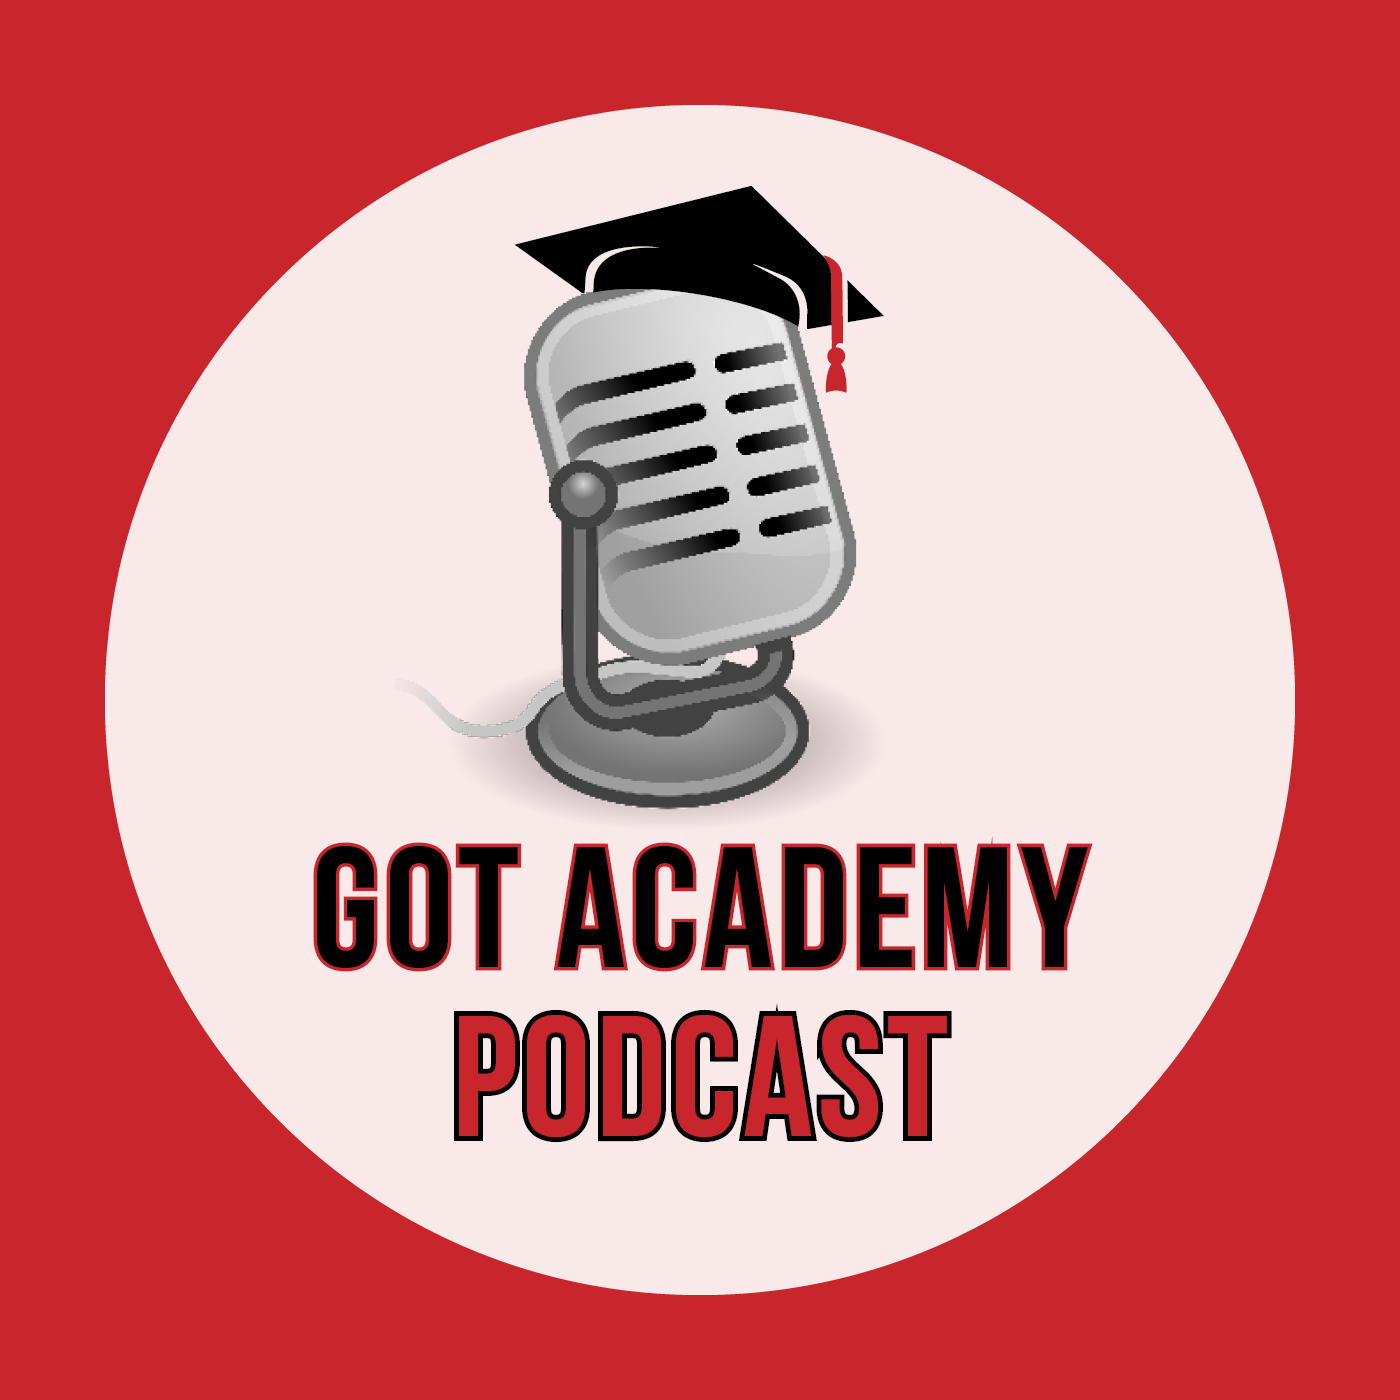 Got Academy Podcast